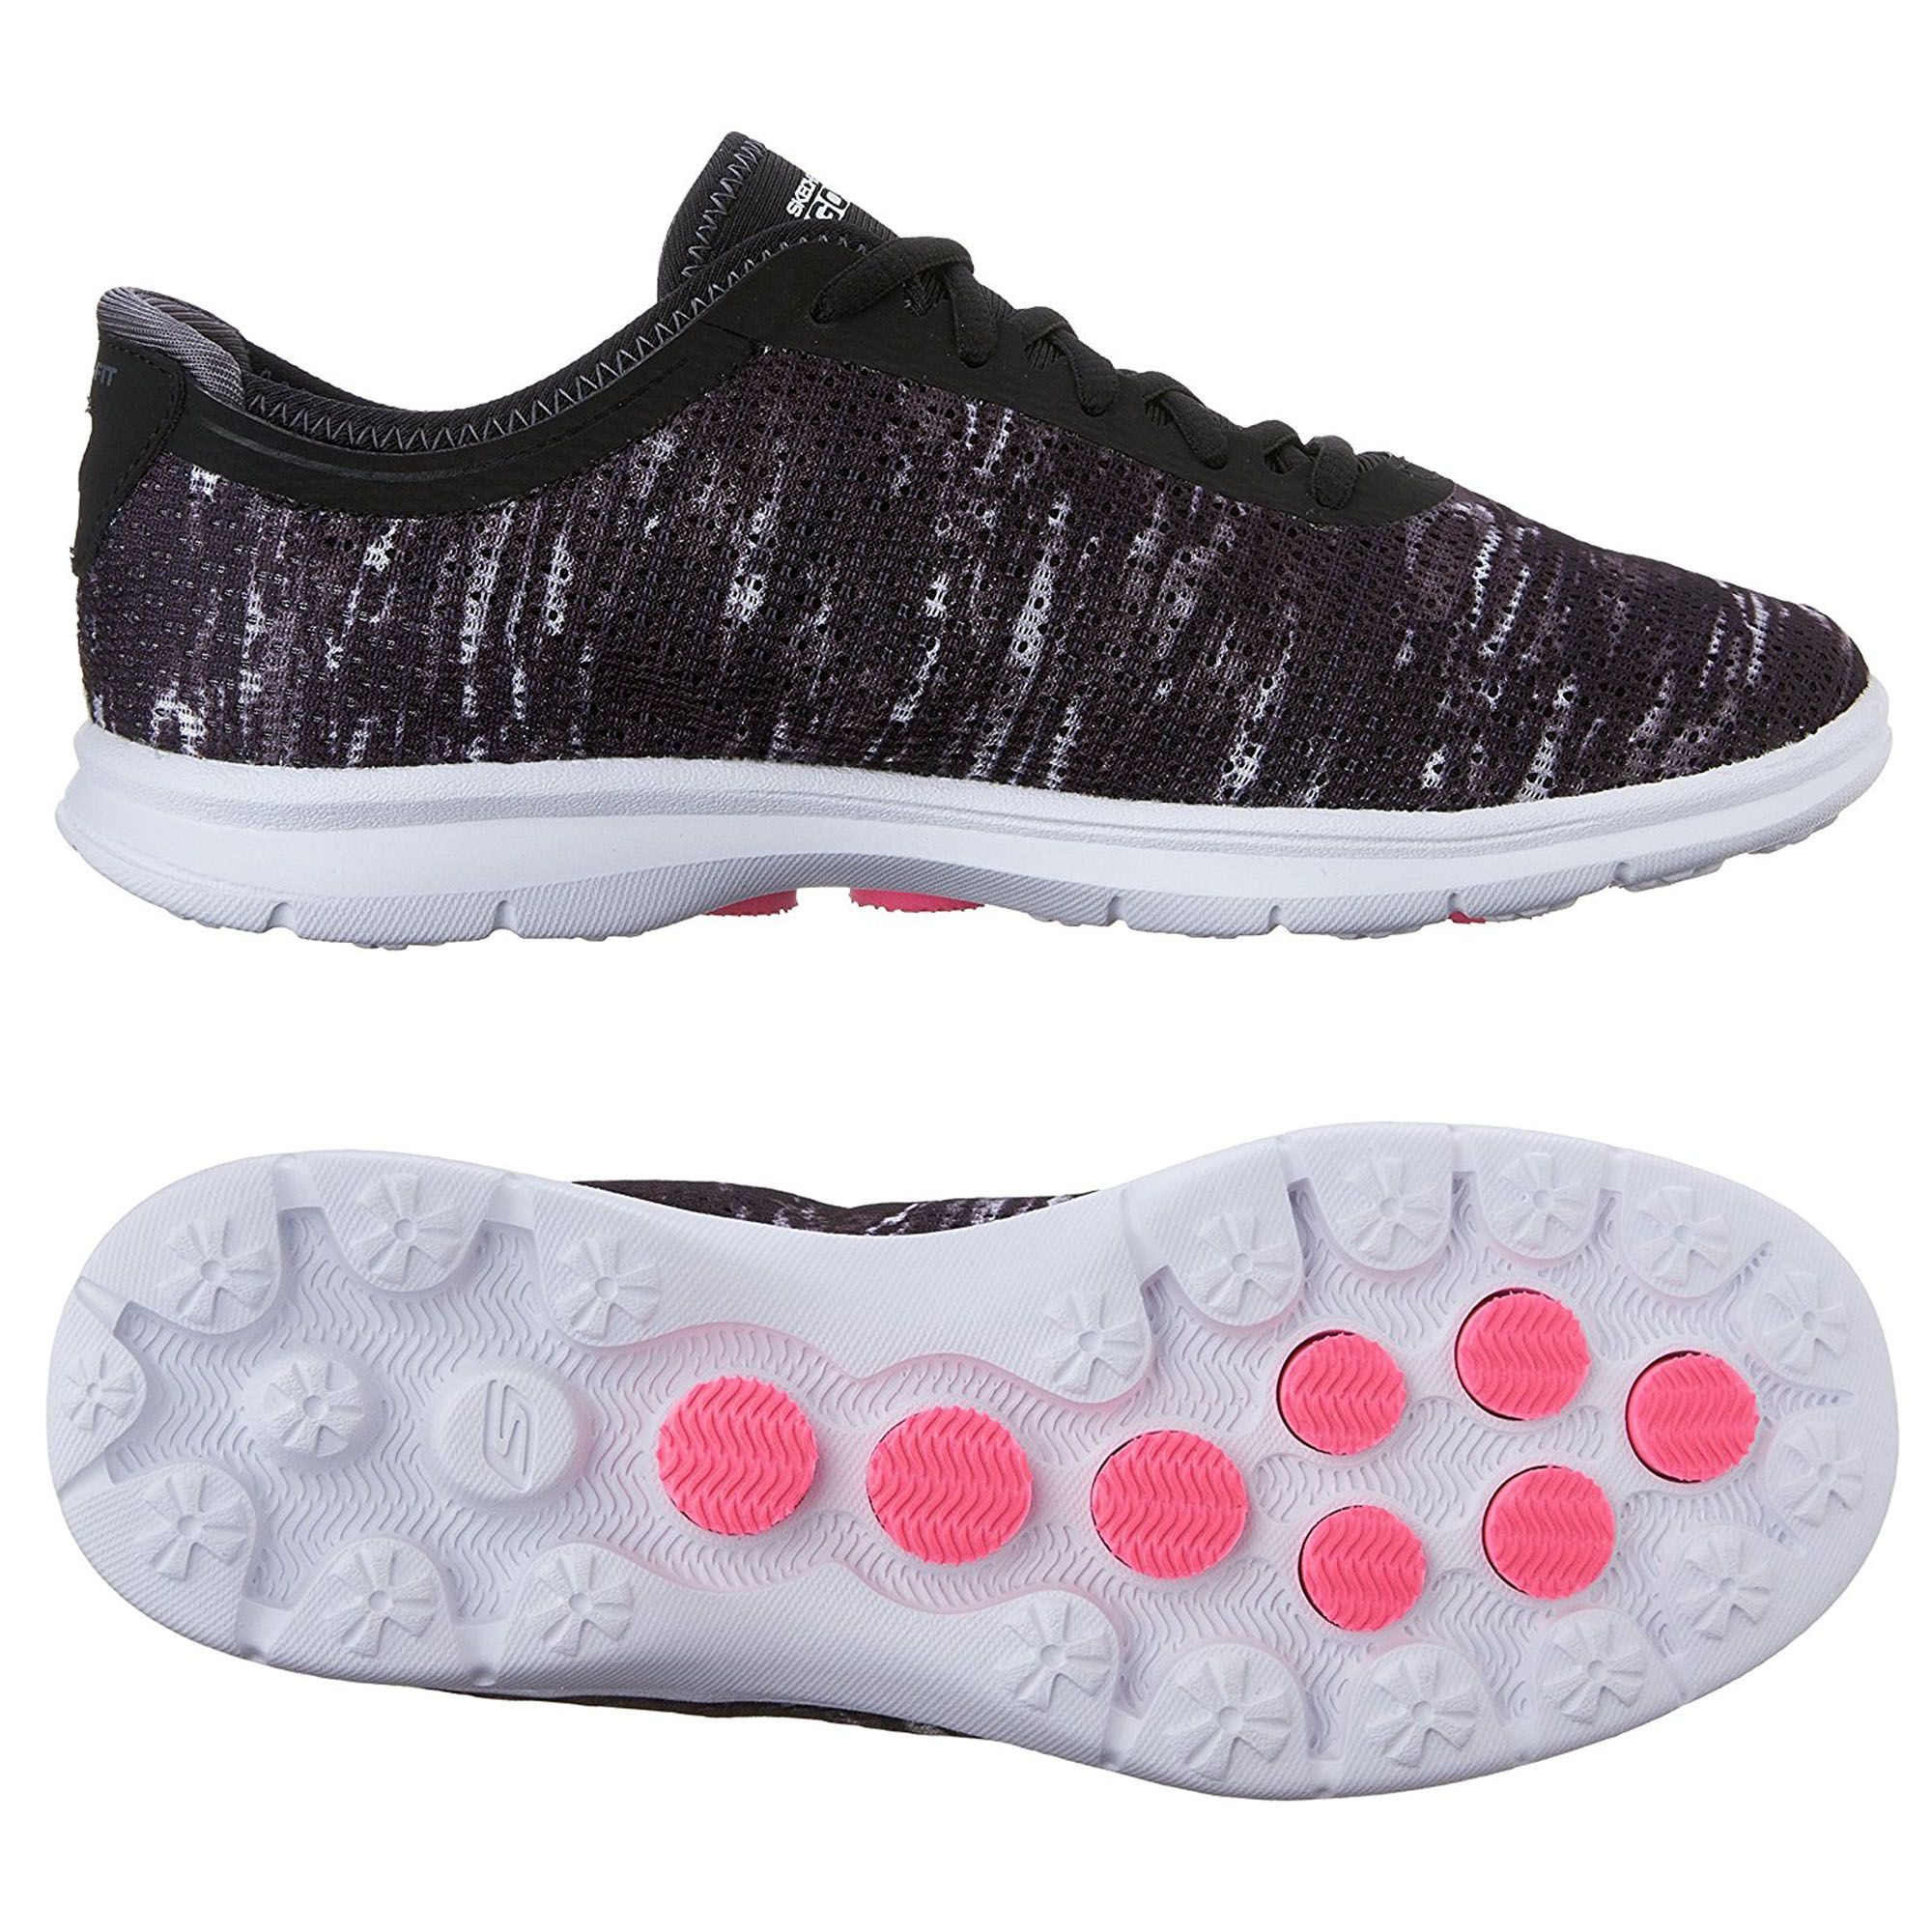 Skechers Go Step Ladies Athletic Shoes Sweatband Com